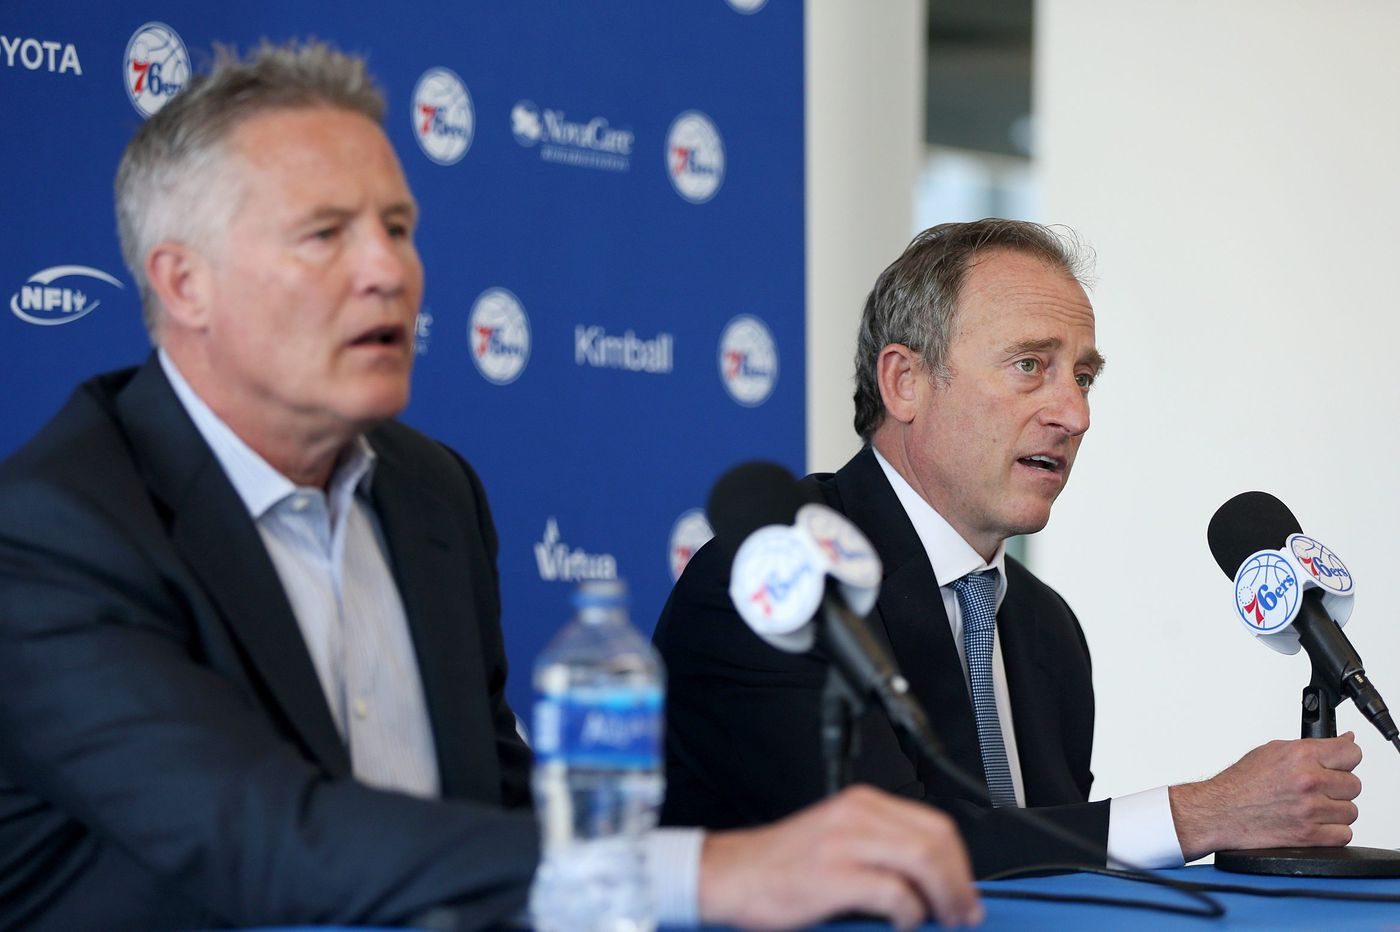 Sixers press conference: What Brett Brown and Josh Harris said about Bryan Colangelo